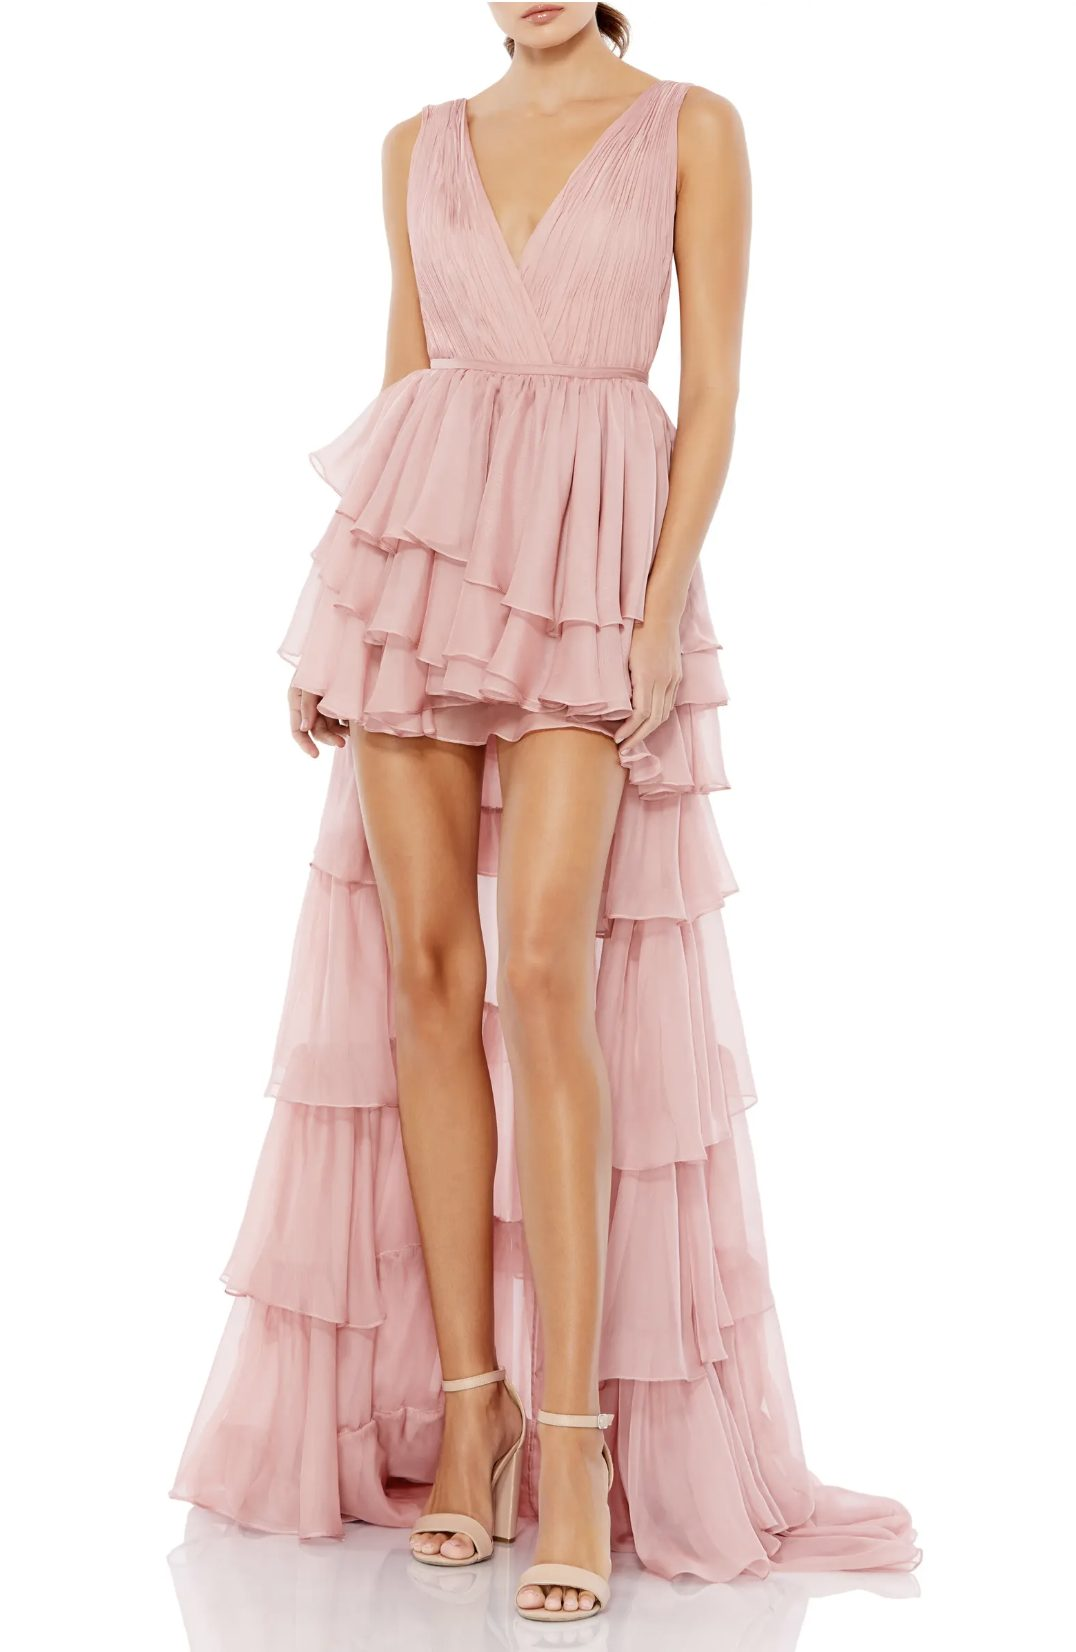 Blush pink tiered prom dress with long trail